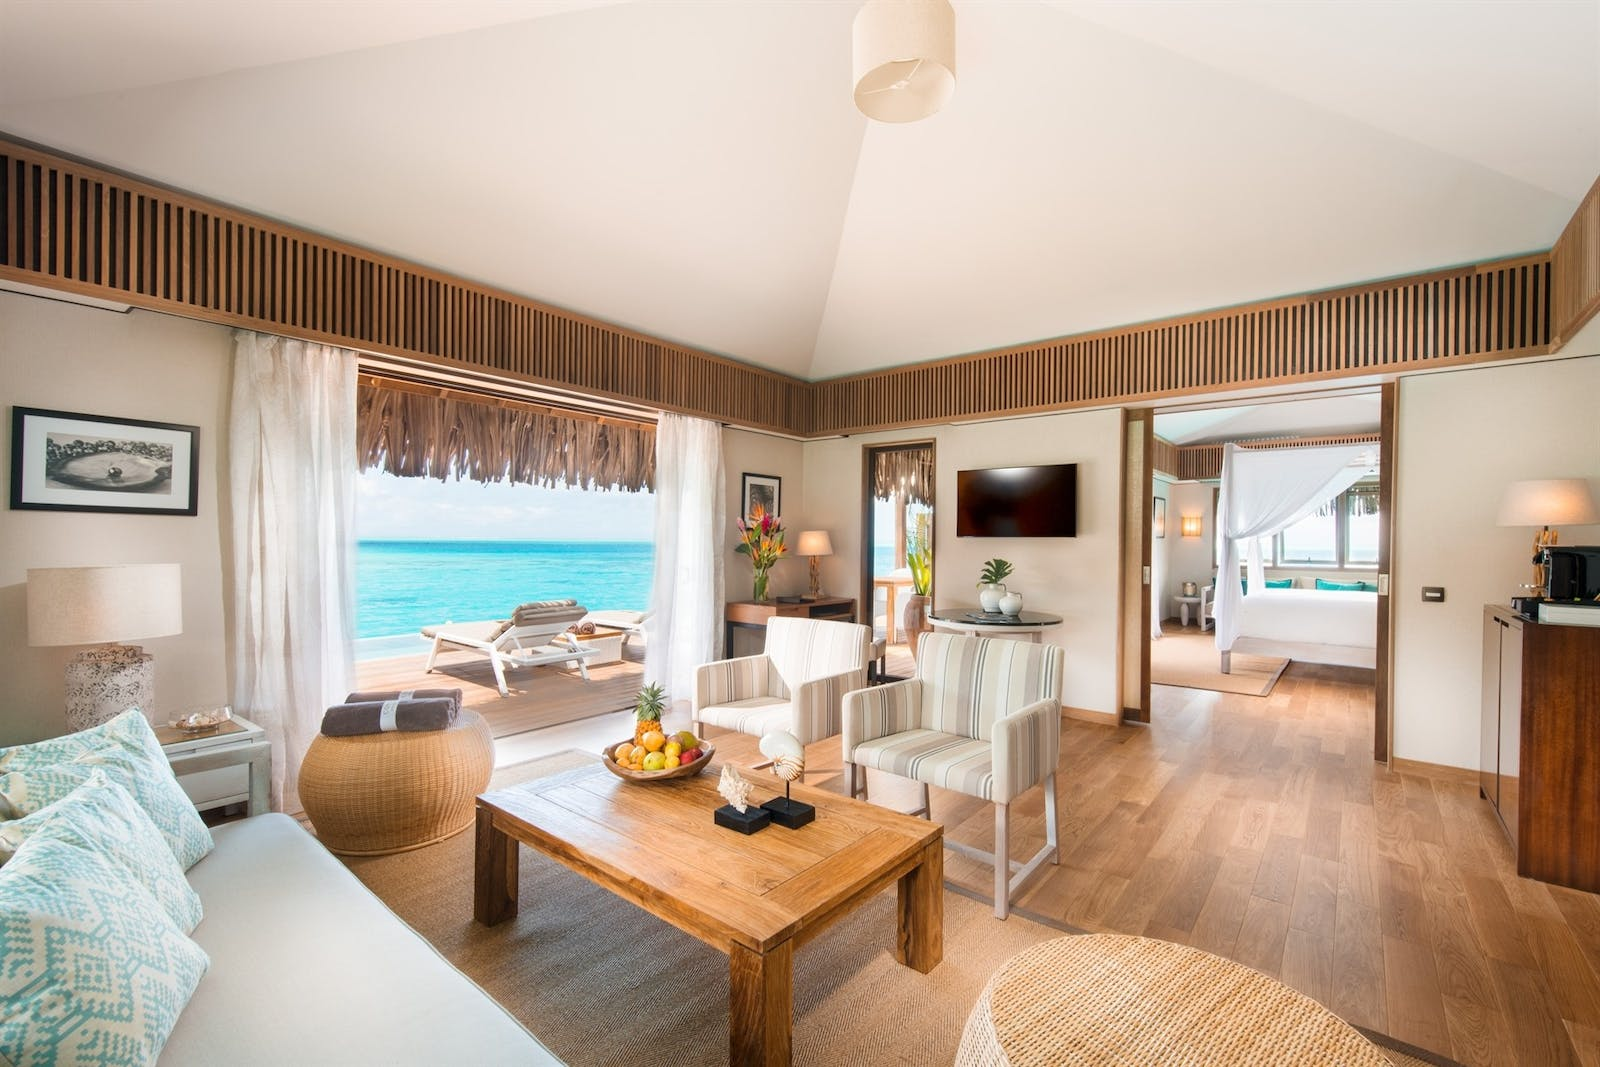 Royal Suite Living Area at Conrad Bora Bora Nui, French Polynesia